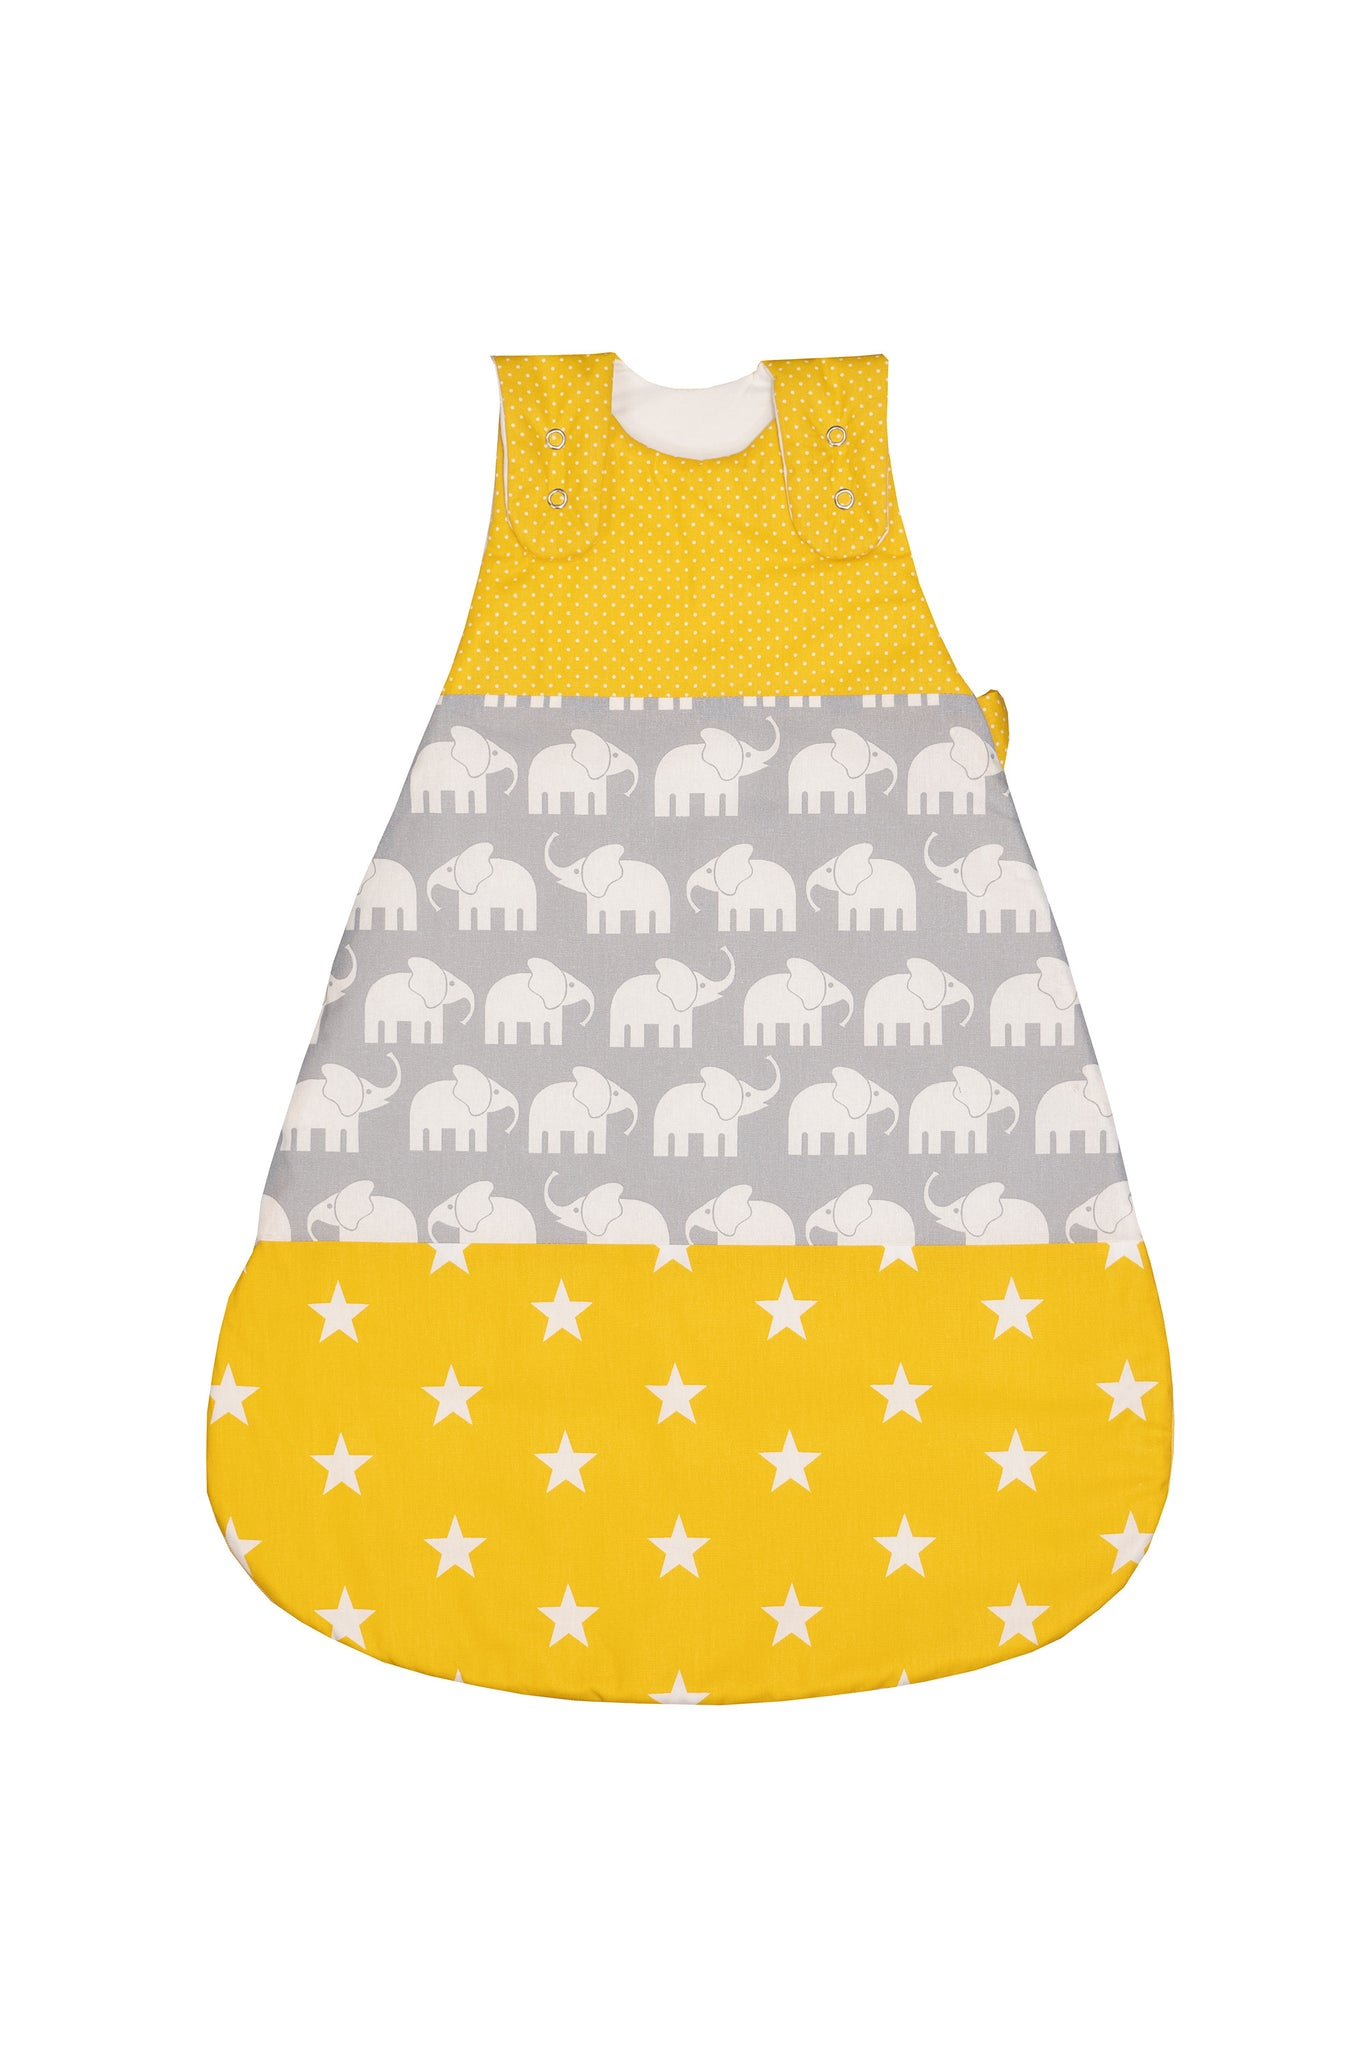 Sleep Sack – Baby Sleeping Bag, Wearable Blanket, Yellow with Elephants, 6-12 Months